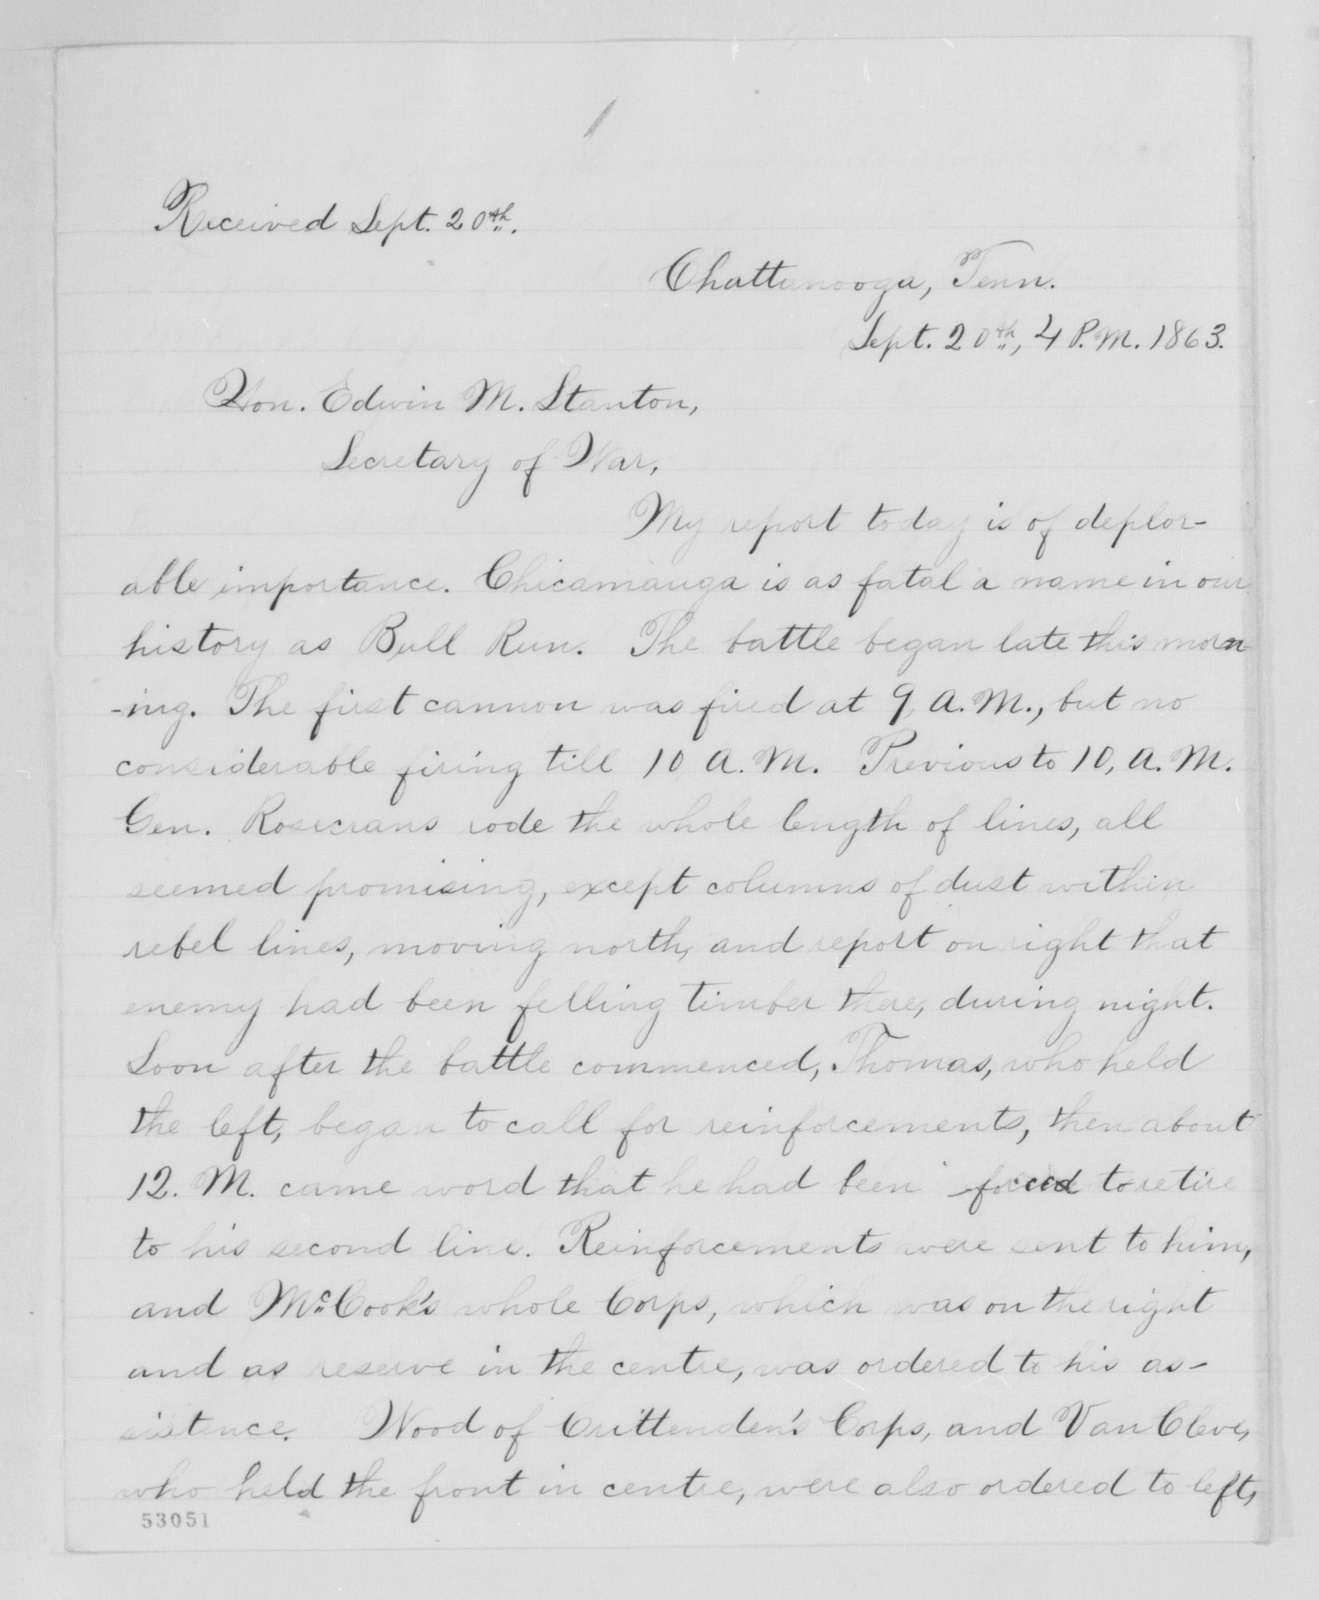 Edwin McMasters Stanton Papers: Correspondence, 1831-1870; 1863; 1863, Sept. 20-25